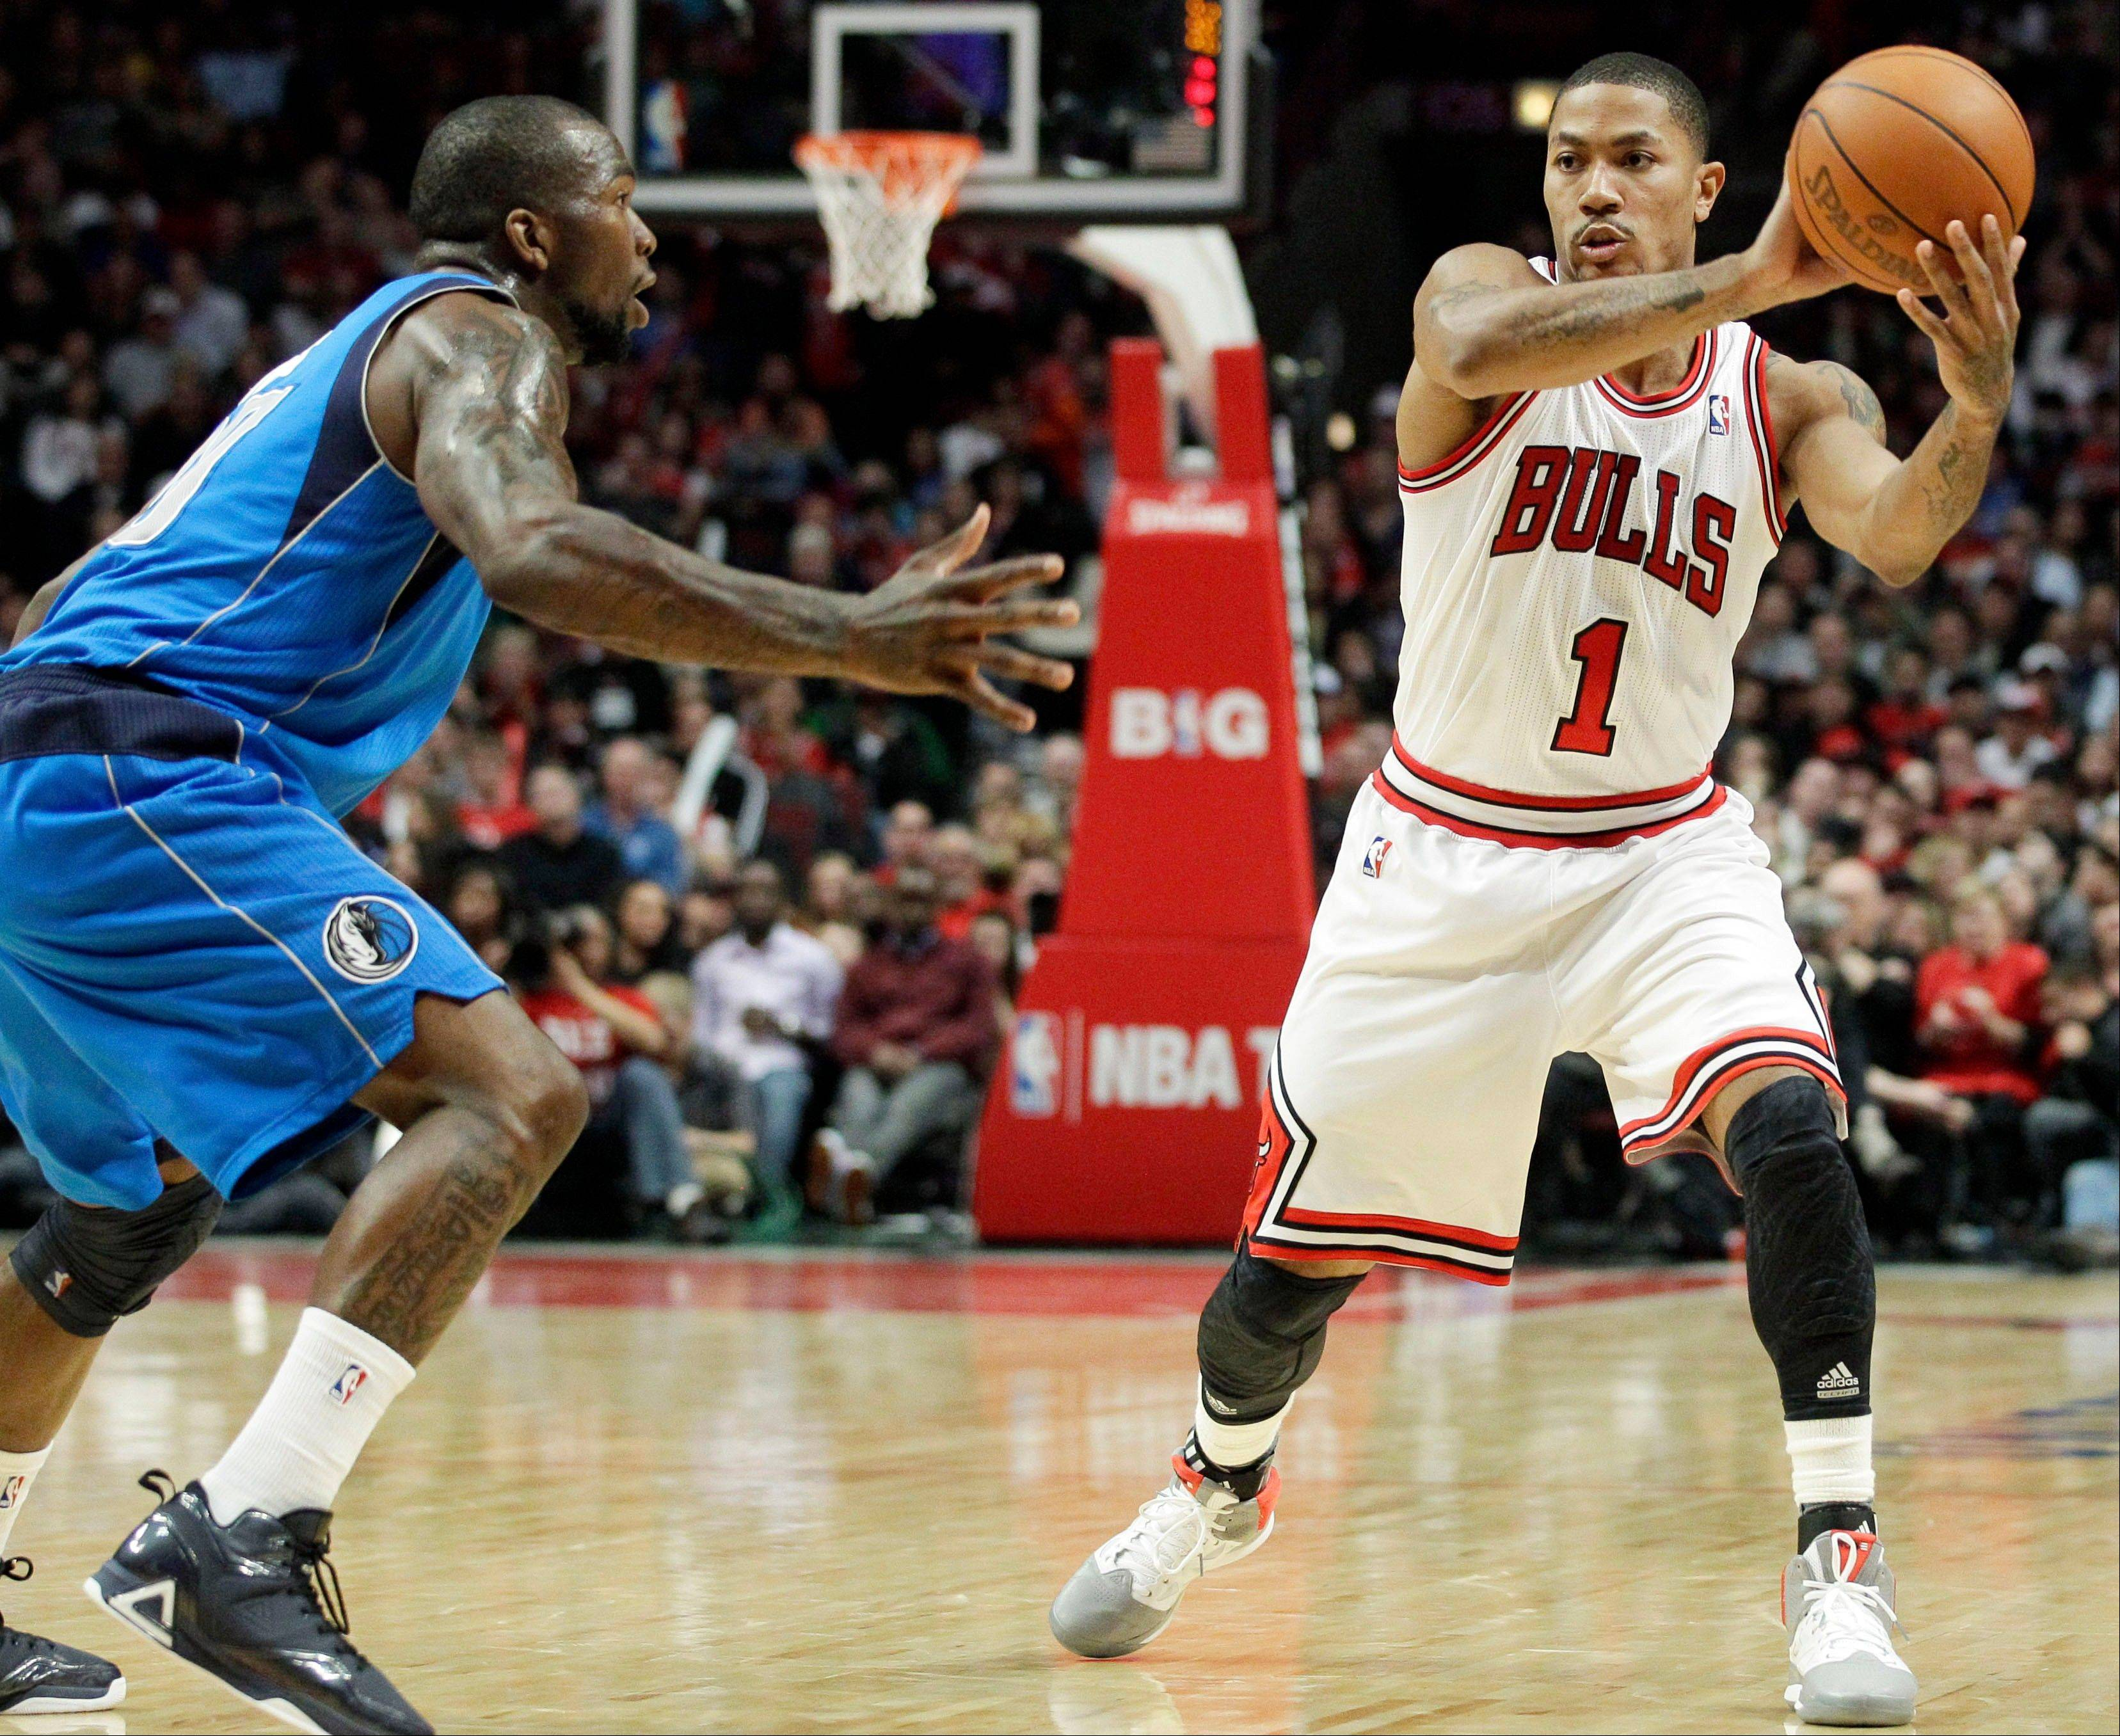 Guard Derrick Rose and the Bulls have two regular-season games remaining to get set for the playoffs.